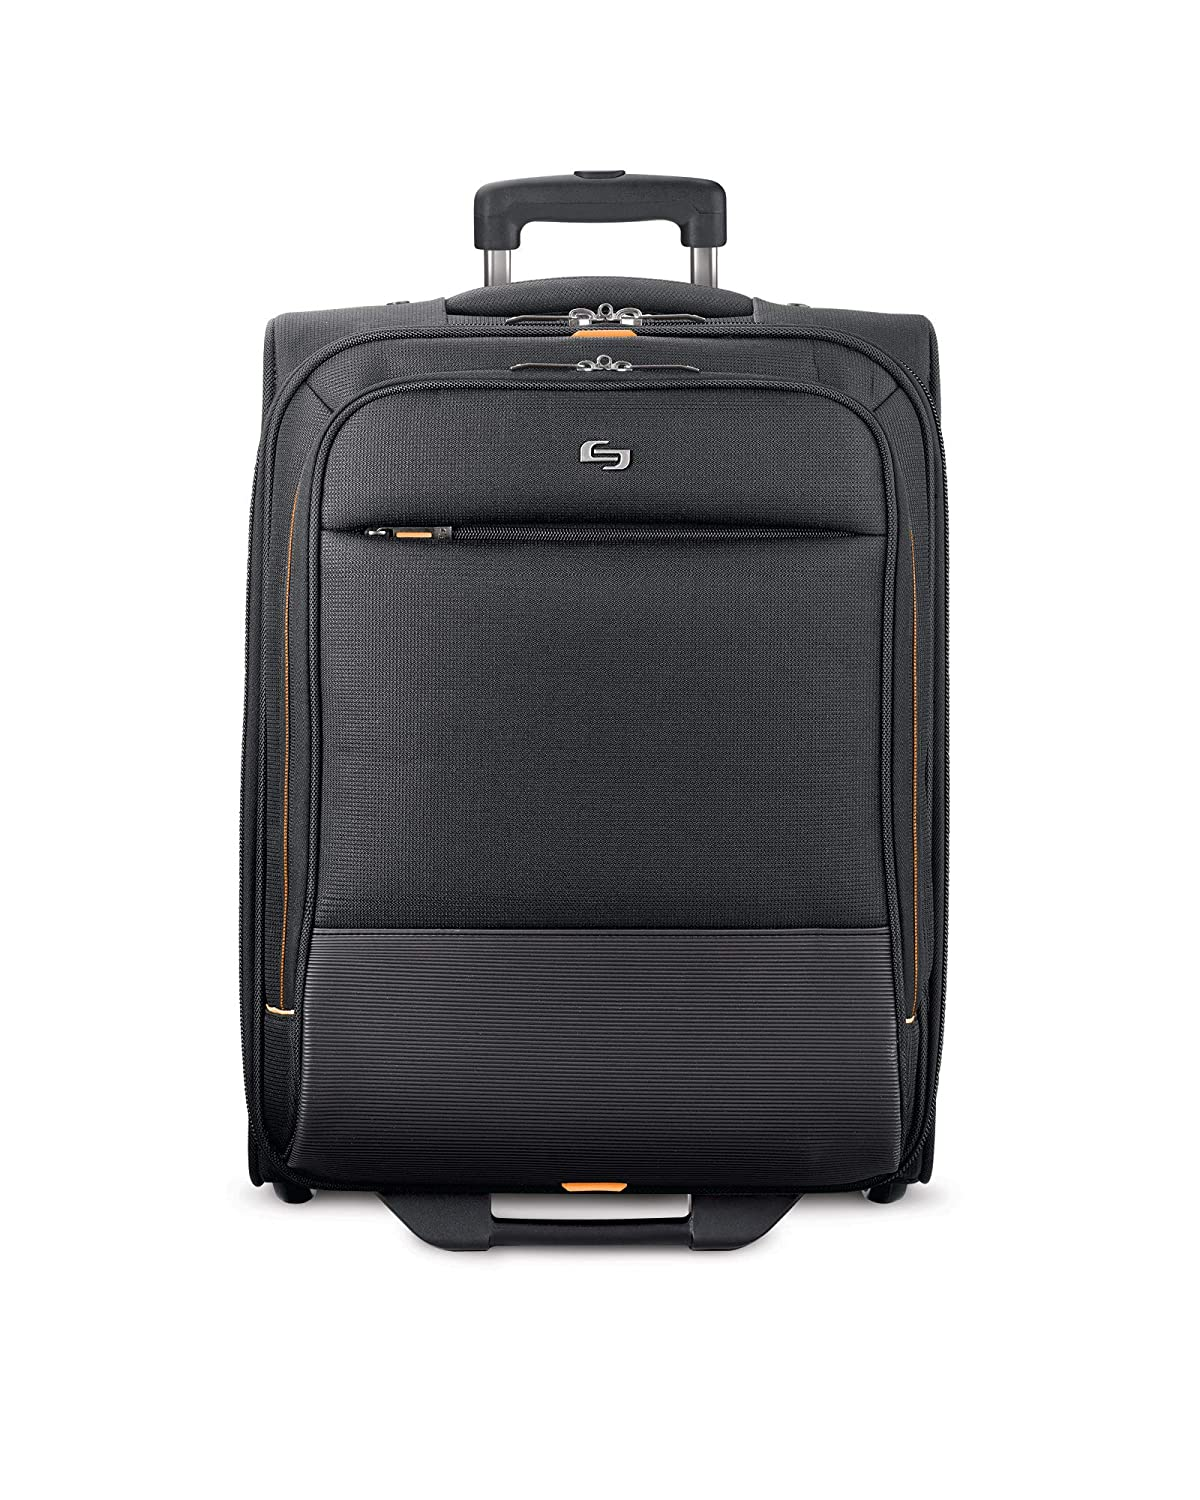 The Laptop Case and Other Urban Stories